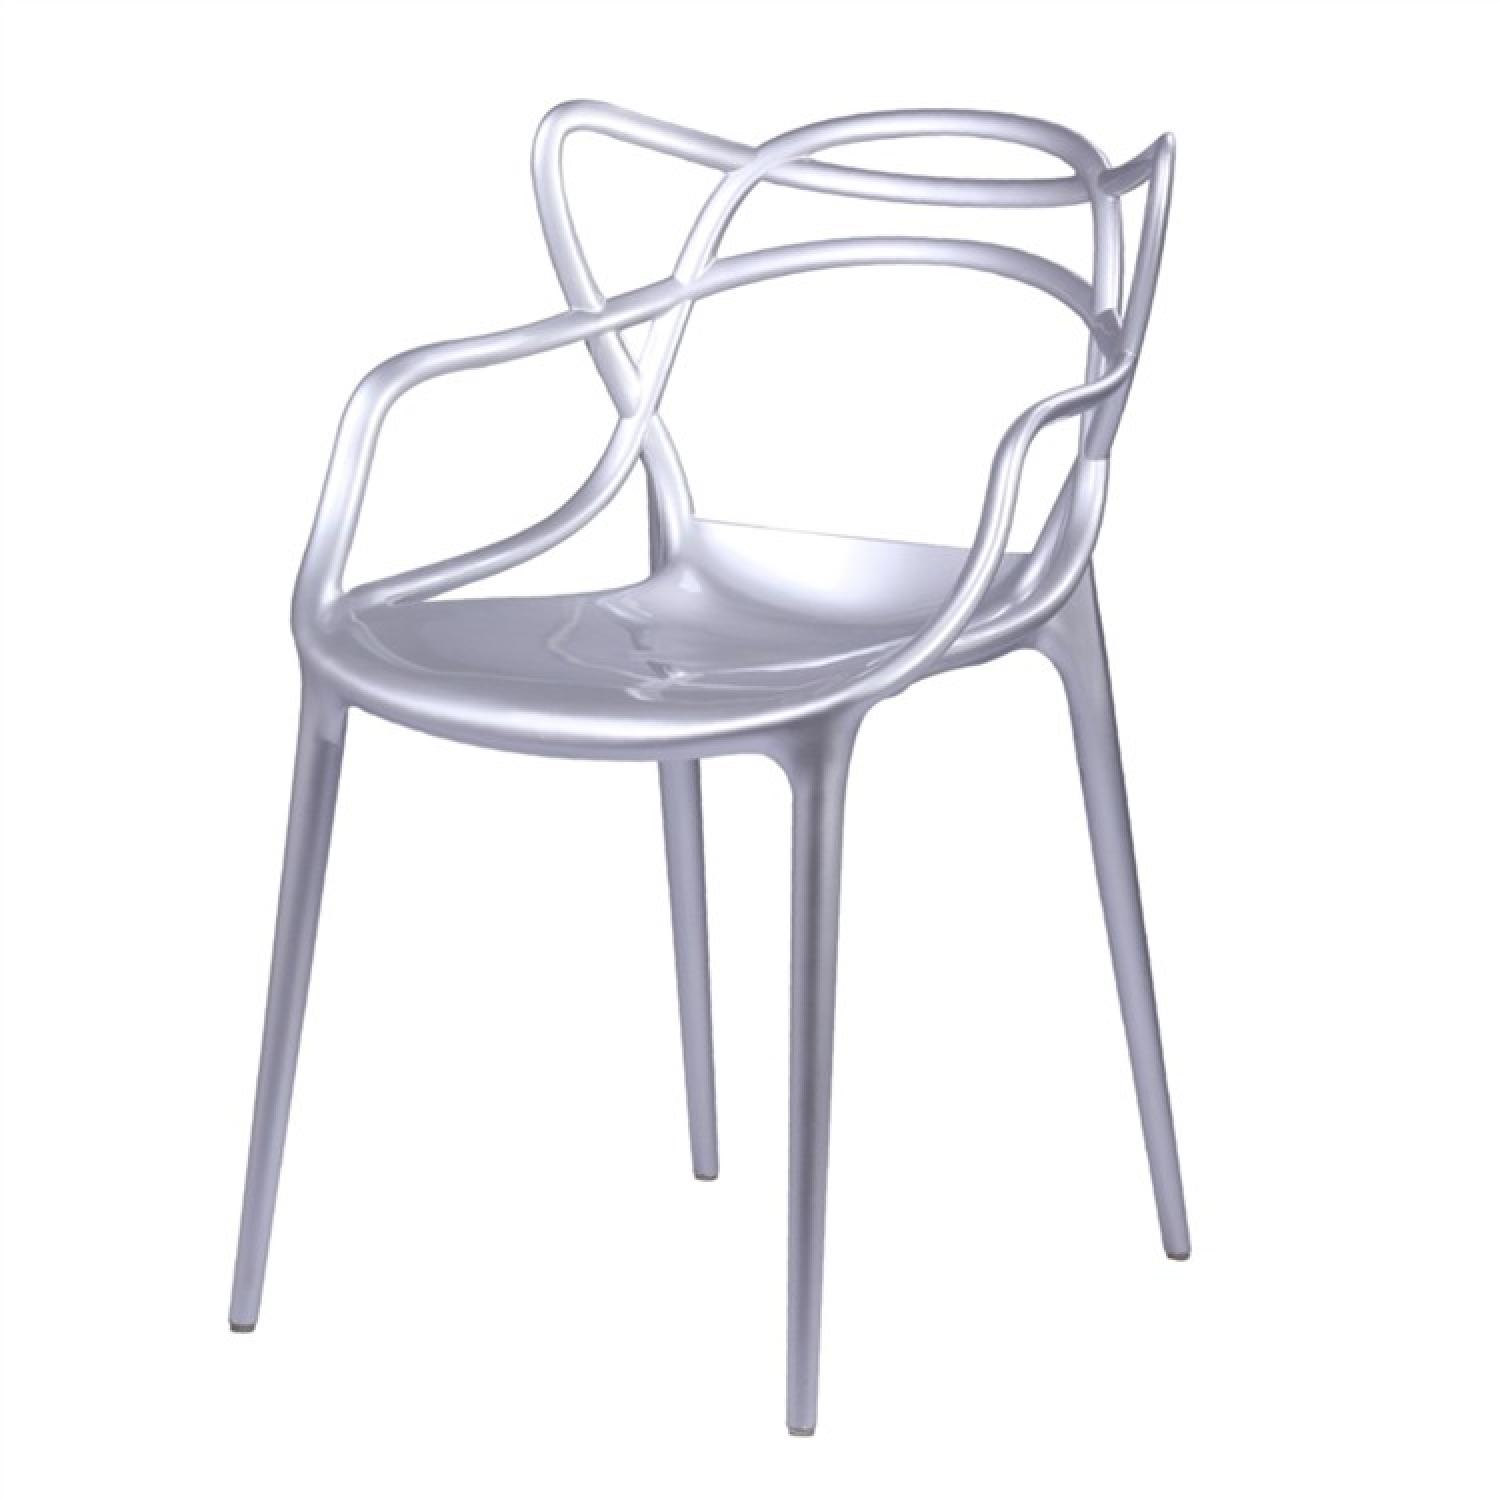 Finemod Brand Name Chair in Silver